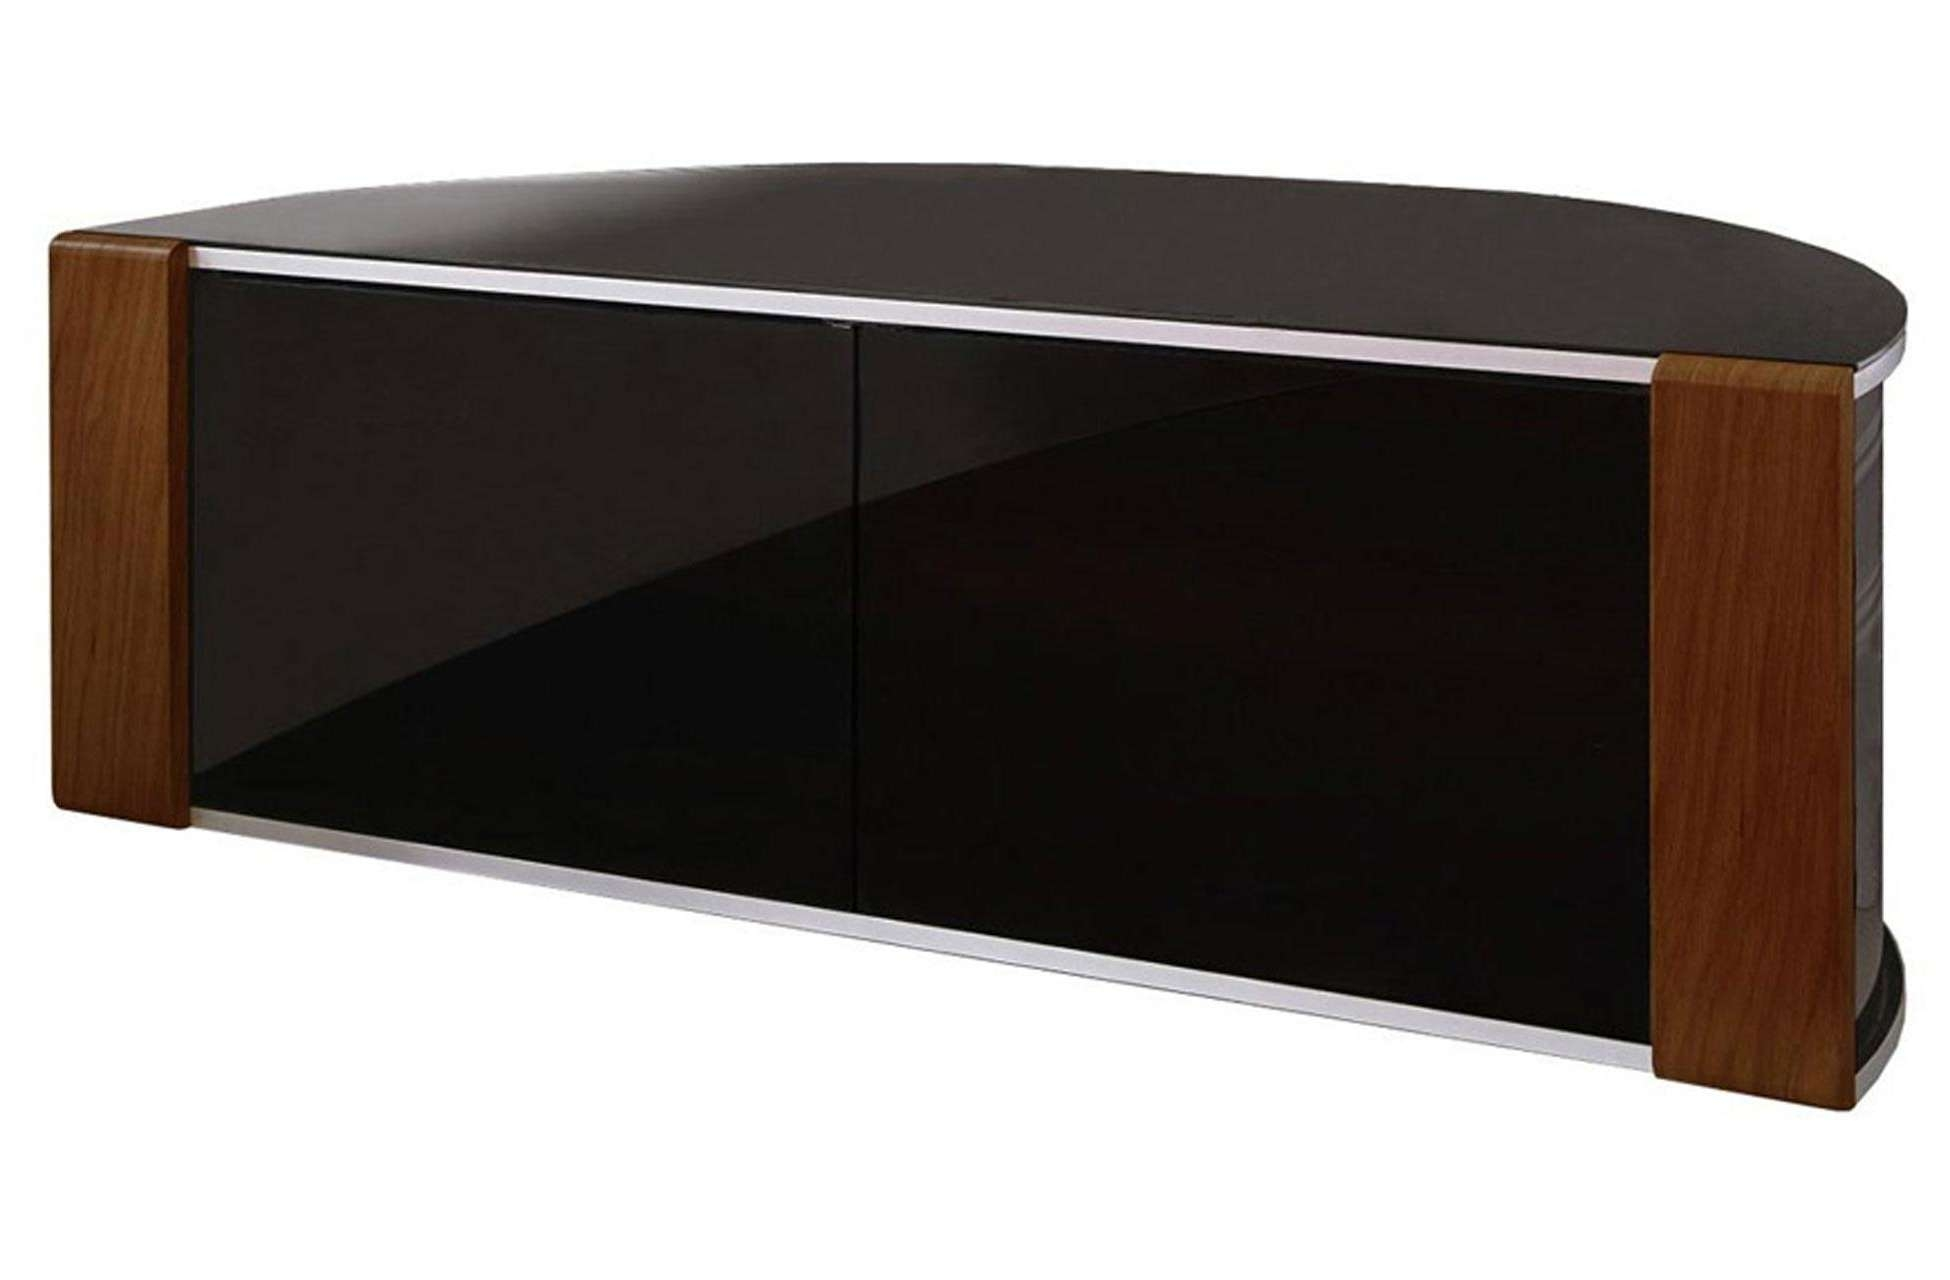 Mda Sirius 1200 | Av/tv Cabinet | Richer Sounds Pertaining To Richer Sounds Tv Stands (View 3 of 15)